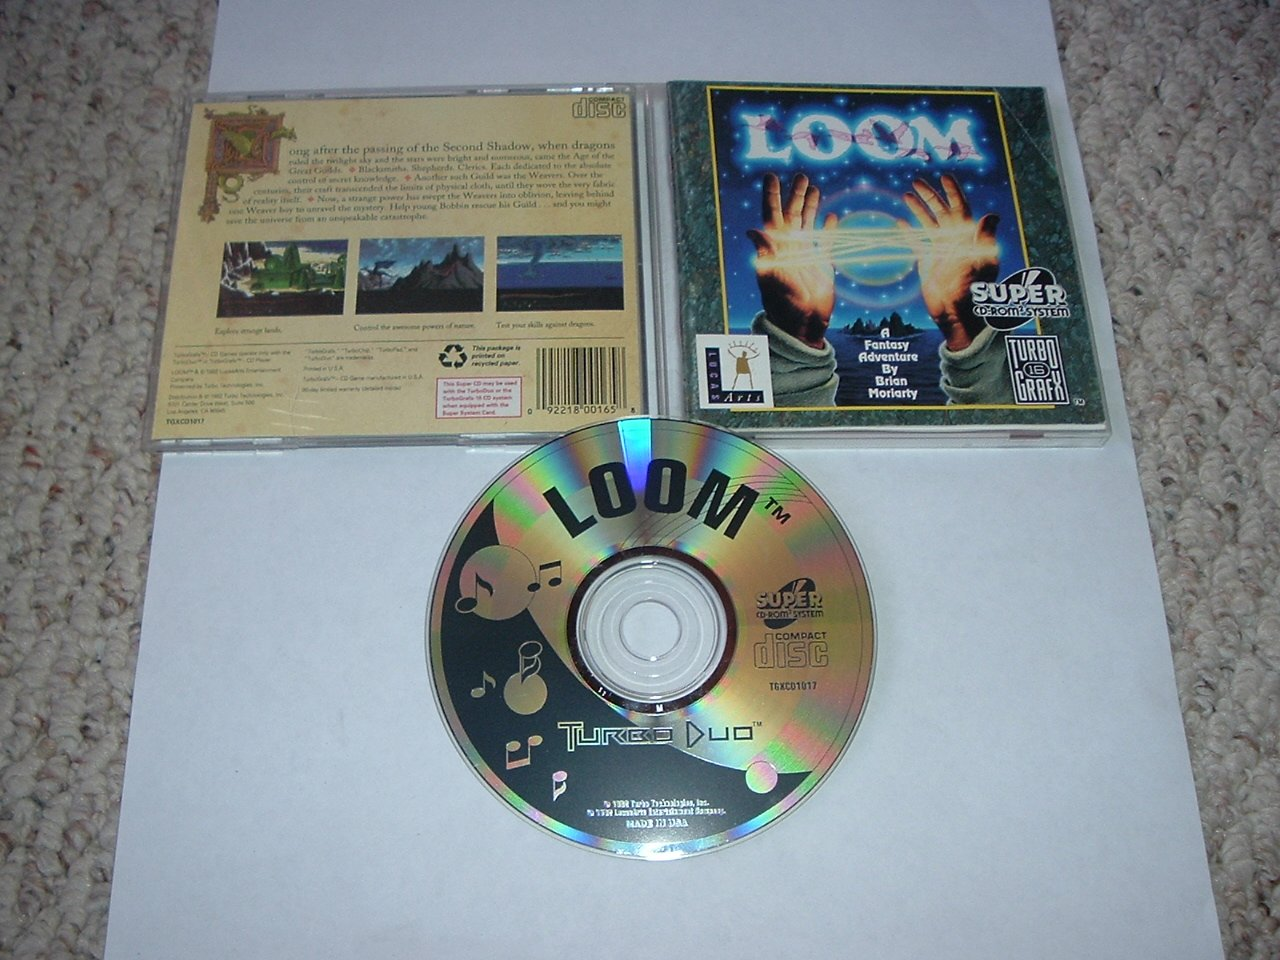 Loom MINT- & COMPLETE IN CASE (Turbo Duo Super CD, grafx 16 CD) RARE lucas arts game FOR SALE